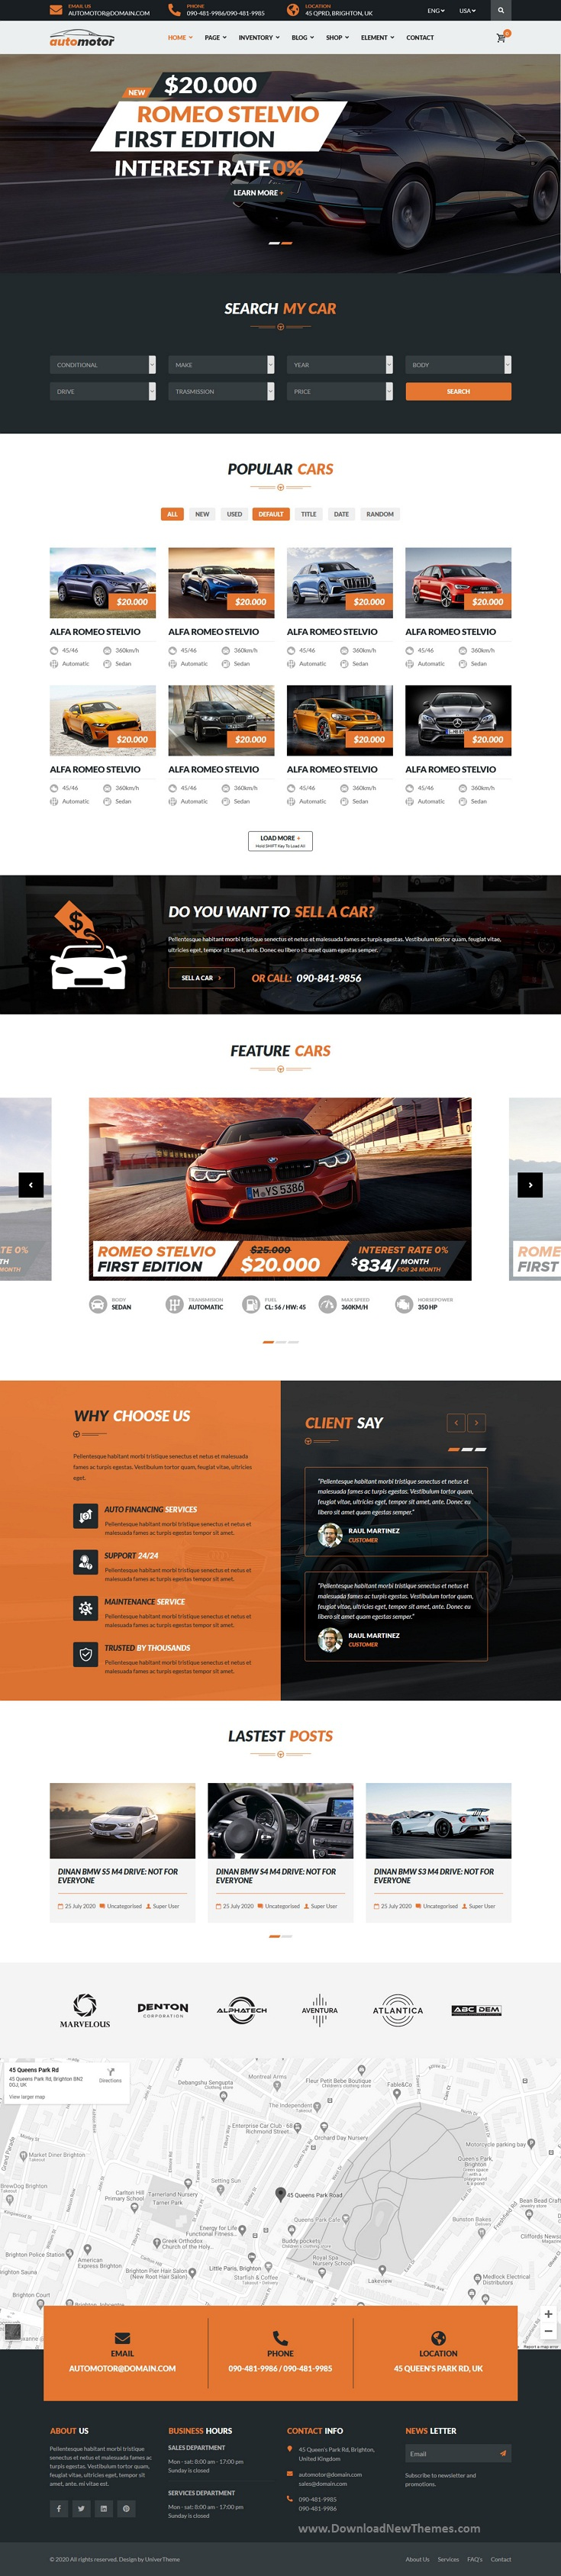 Best Car Dealer & Services Joomla Template